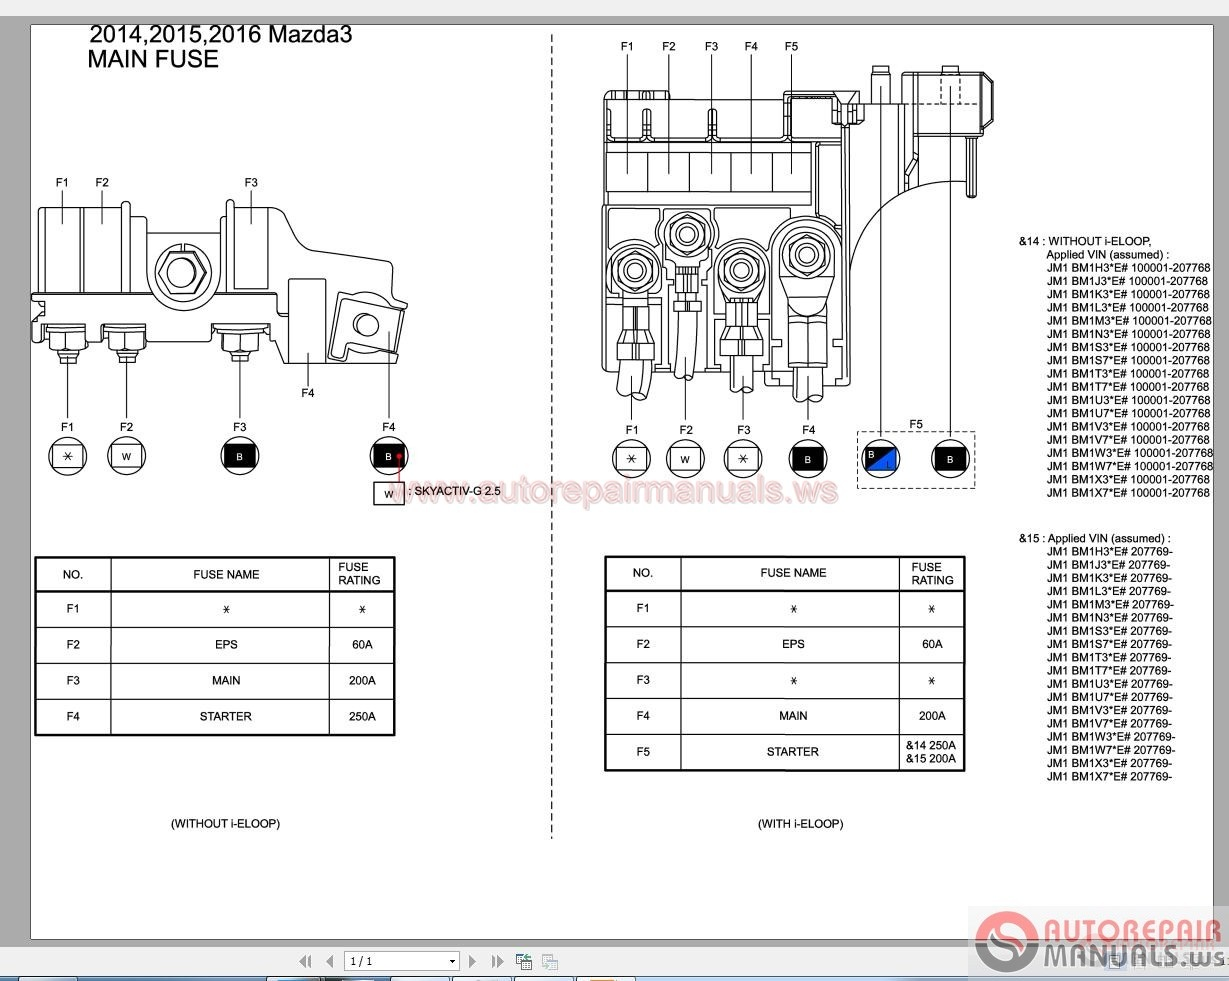 2008 Mazda 3 Wiring Diagram Manual : 34 Wiring Diagram